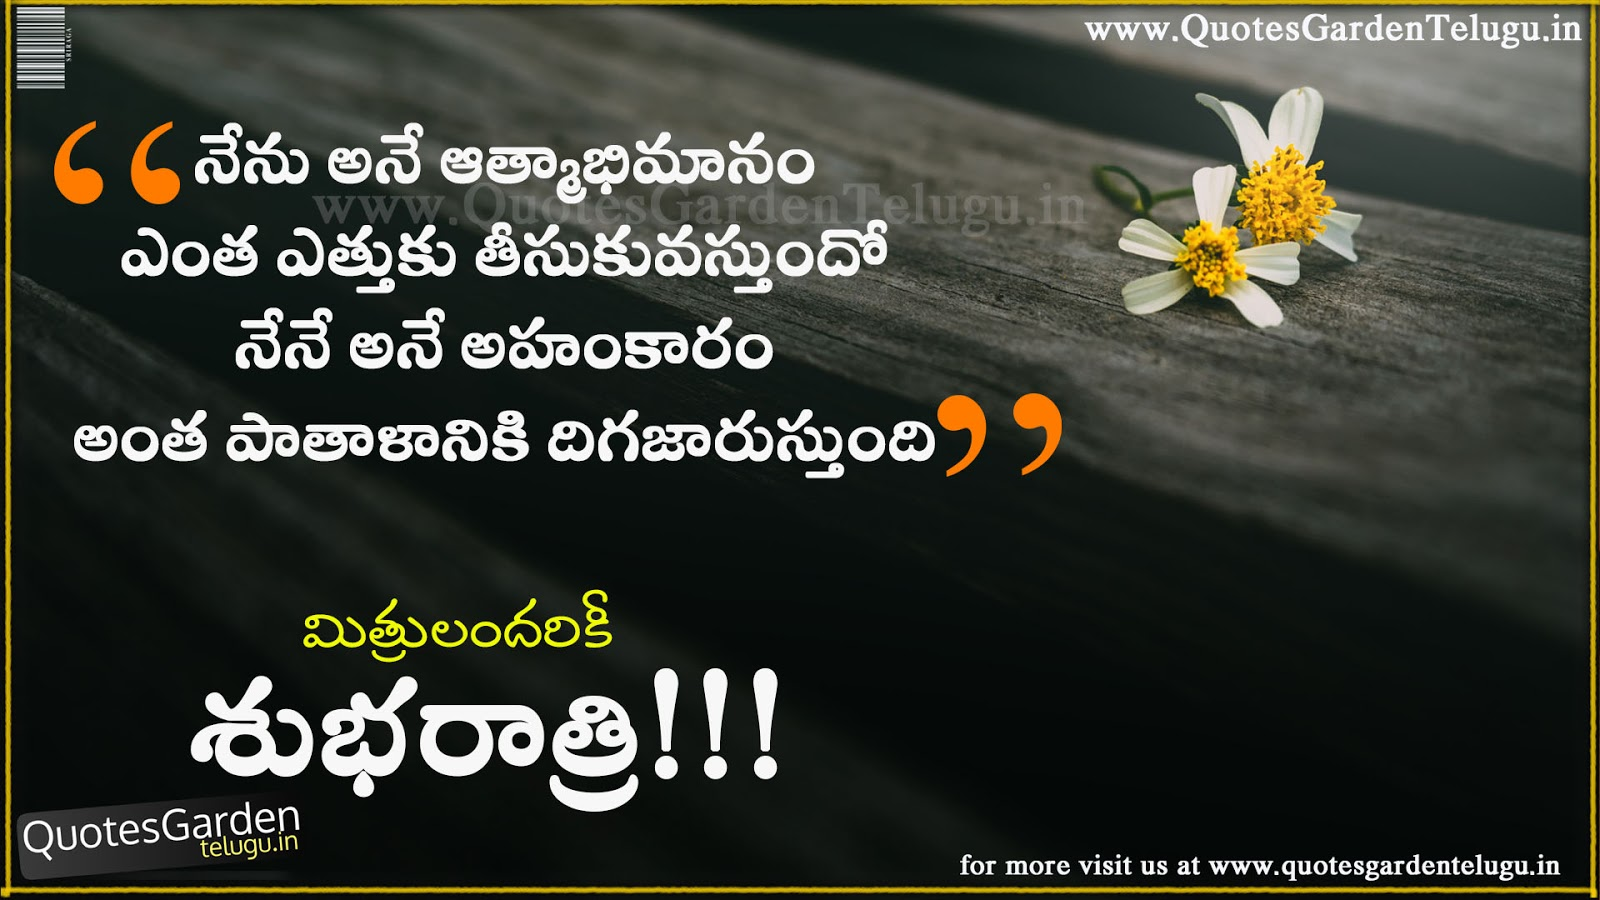 Great Quotations Heart Touching Telugu Life Quotes For Good Night Greetings